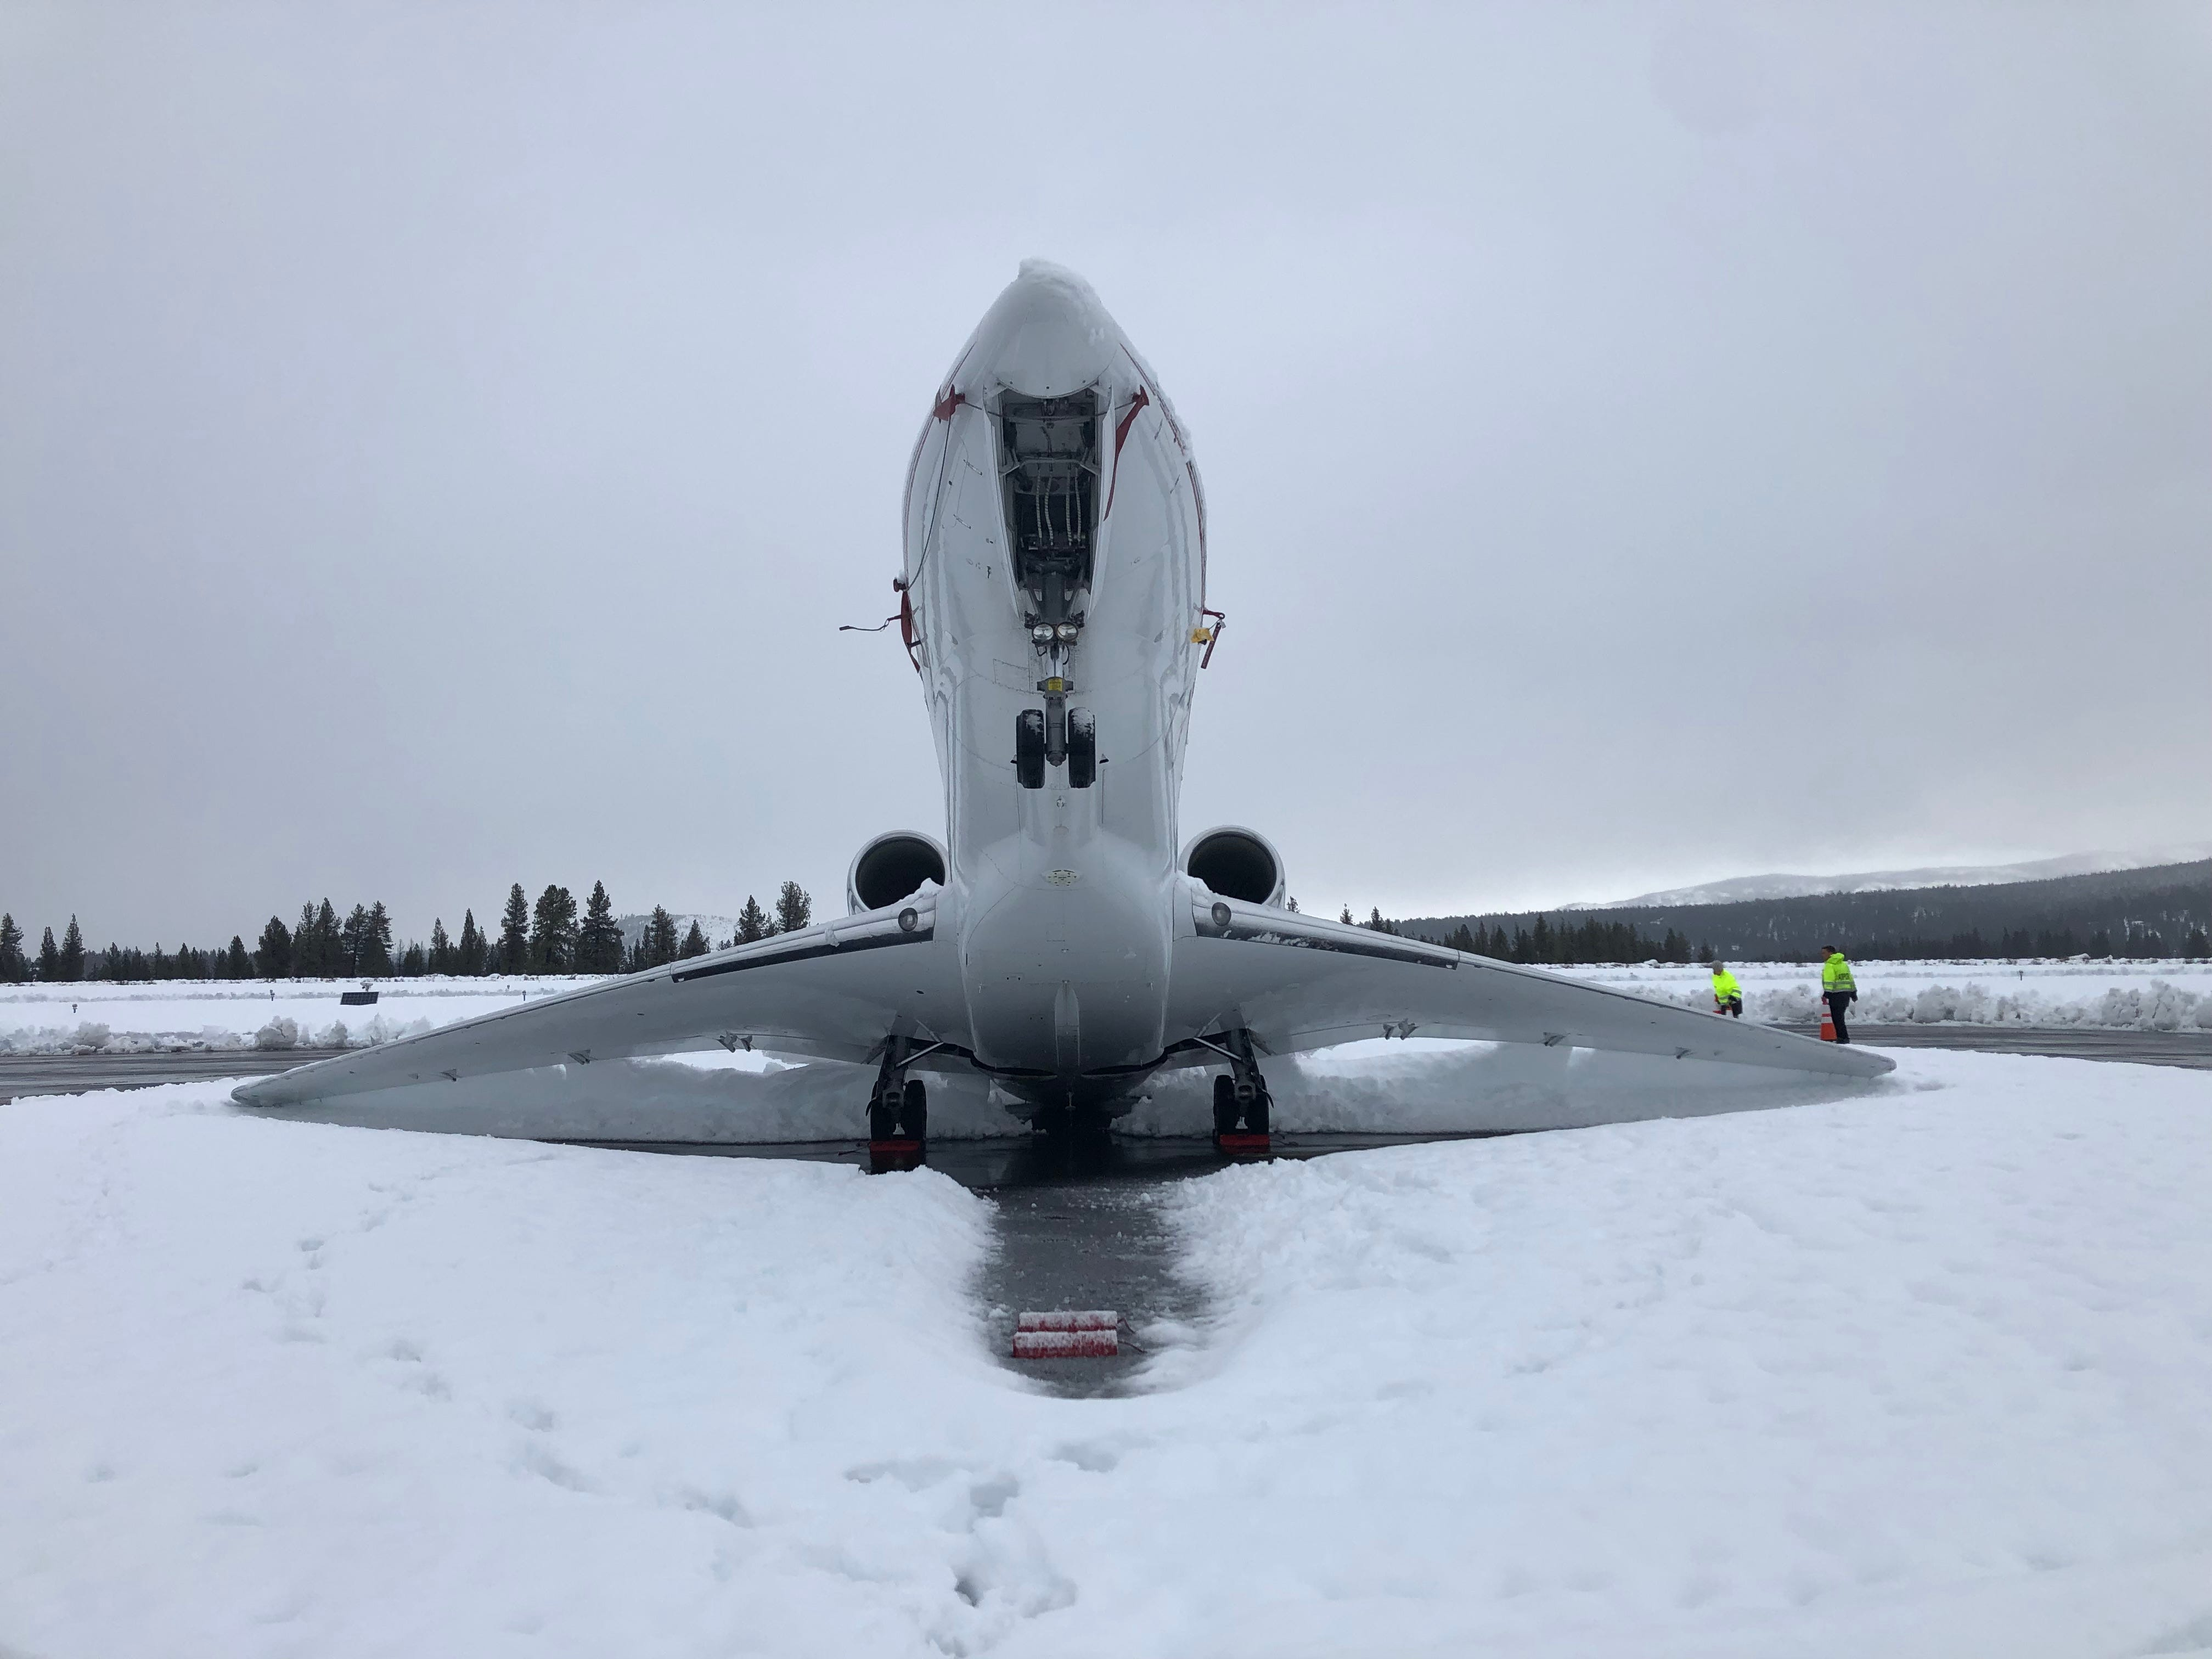 Over 16 inches of wet, dense snow at the Truckee Tahoe Airport caused a Cessna Citation X business jet to do a tail stand in its outdoor parking spot on Jan. 16, 2019.